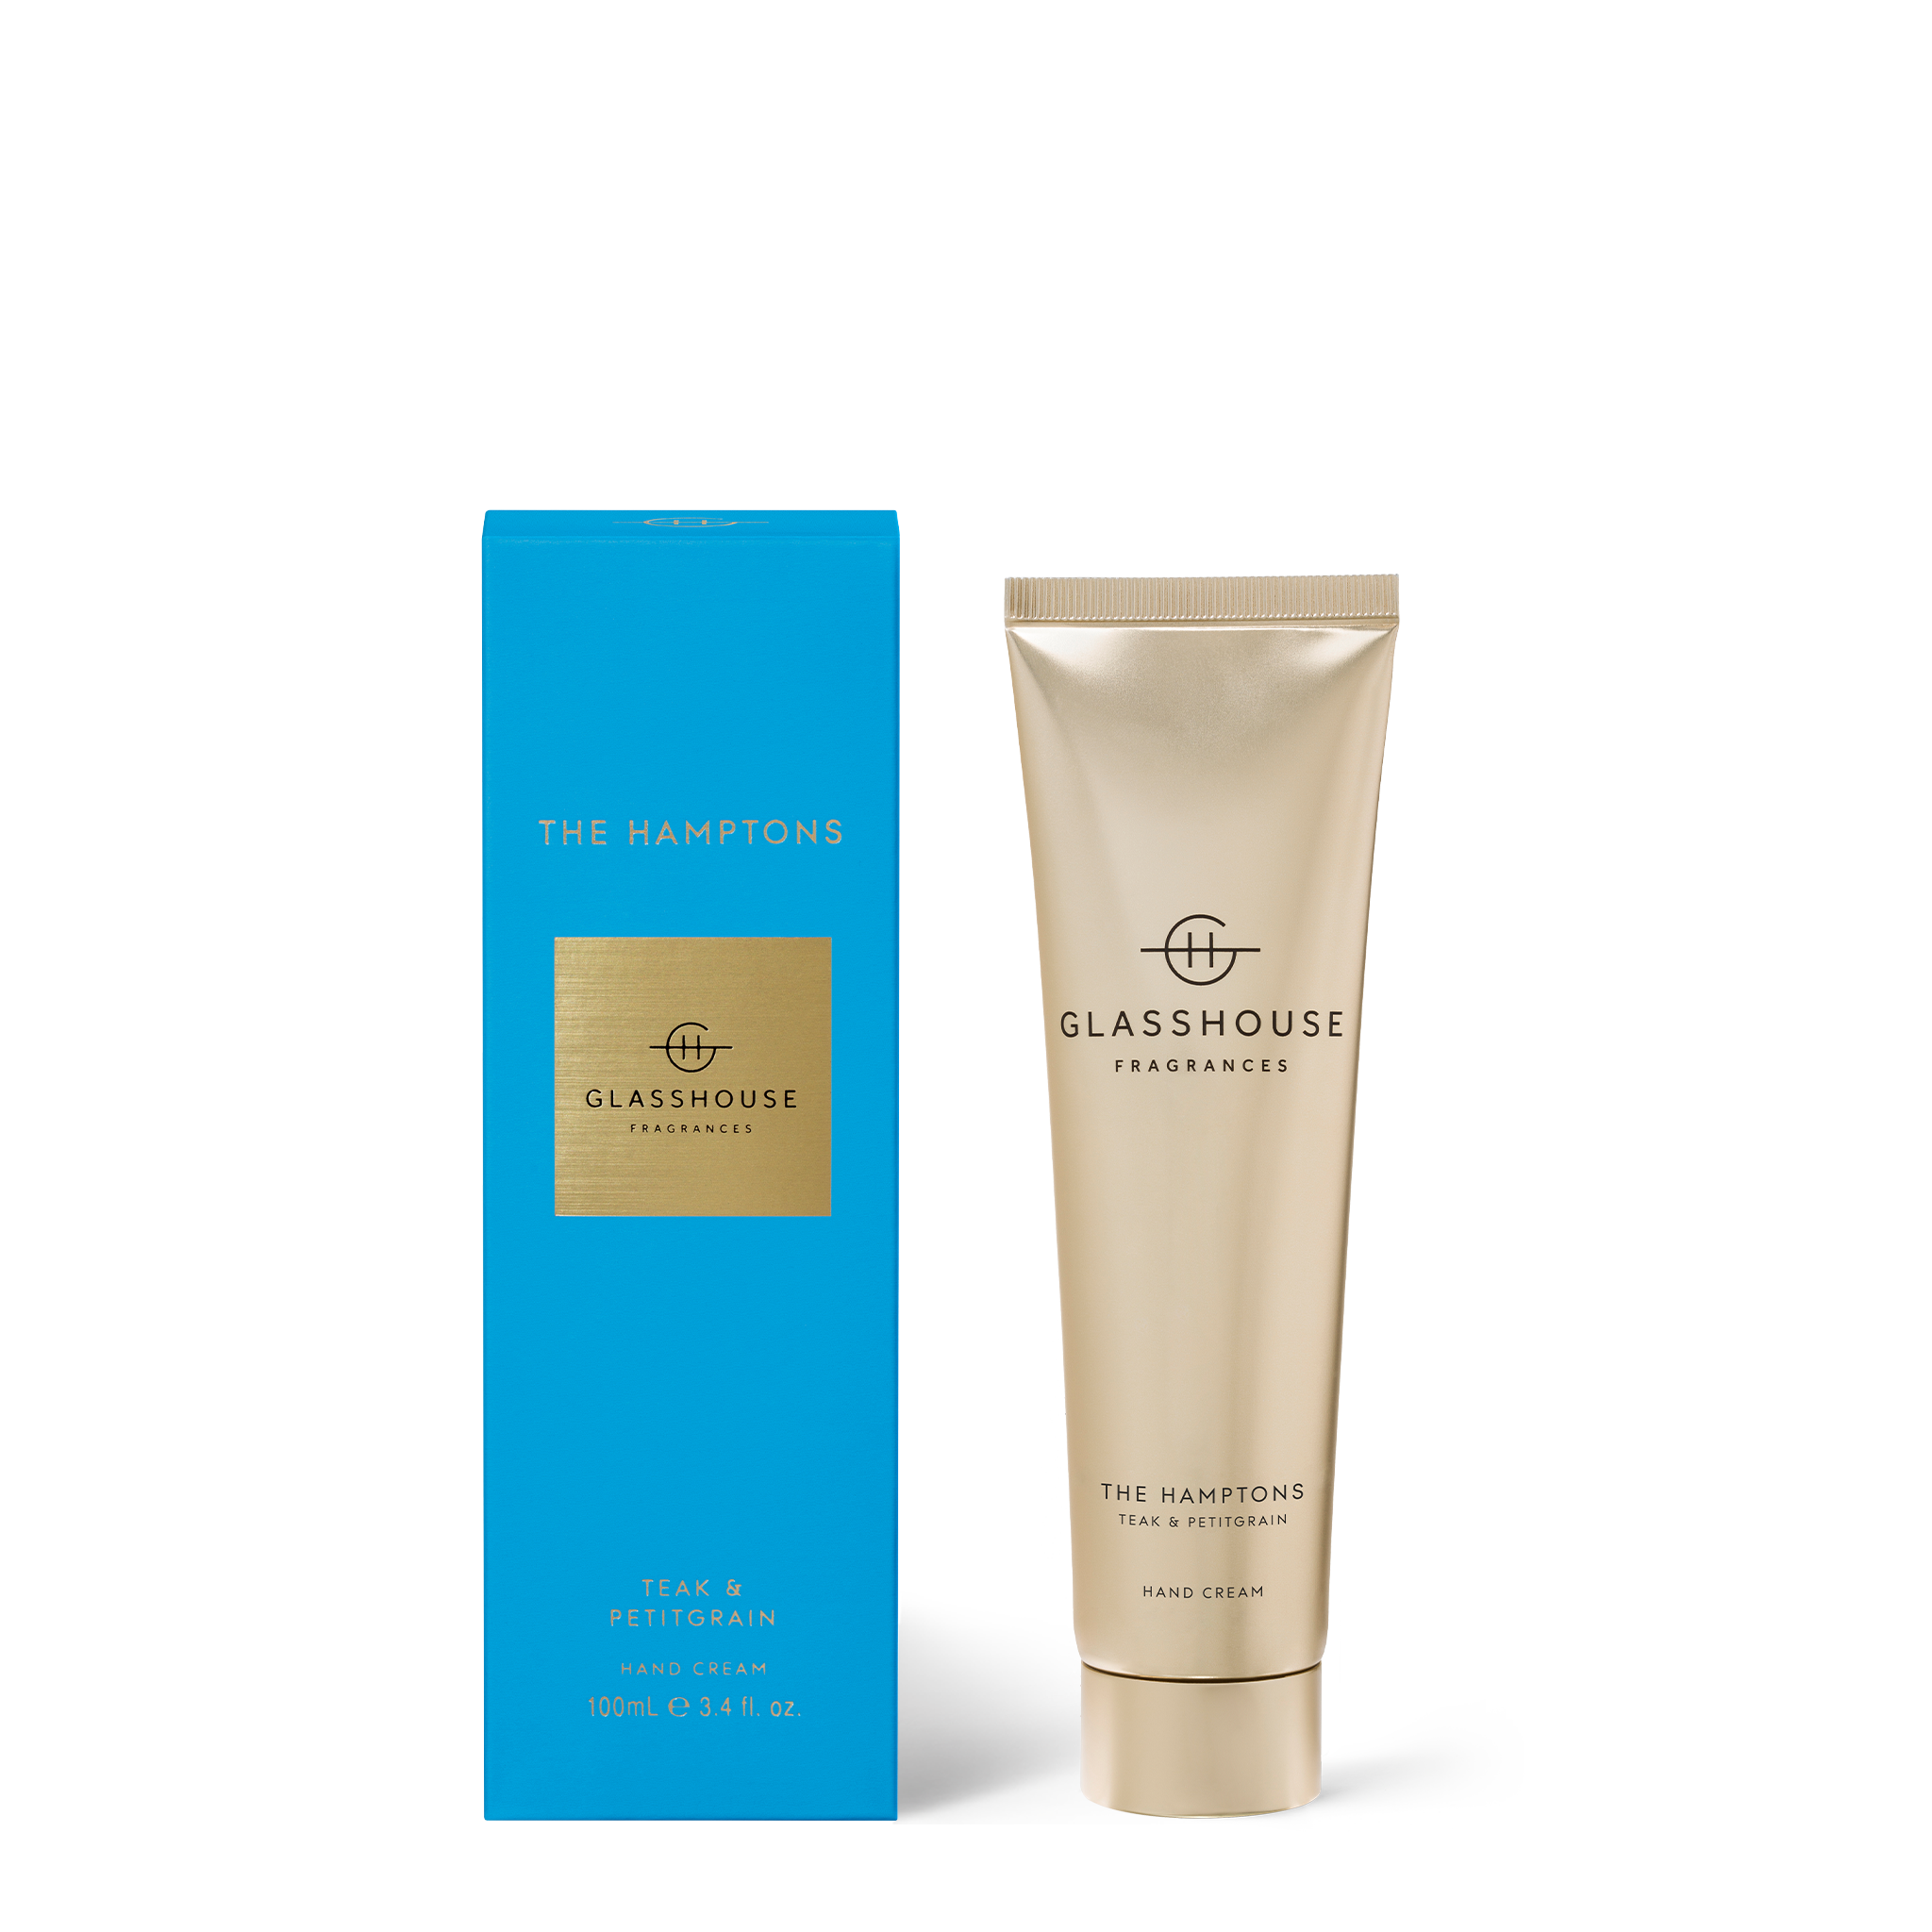 GLASSHOUSE FRAGRANCES The Hamptons Hand Cream 100ml